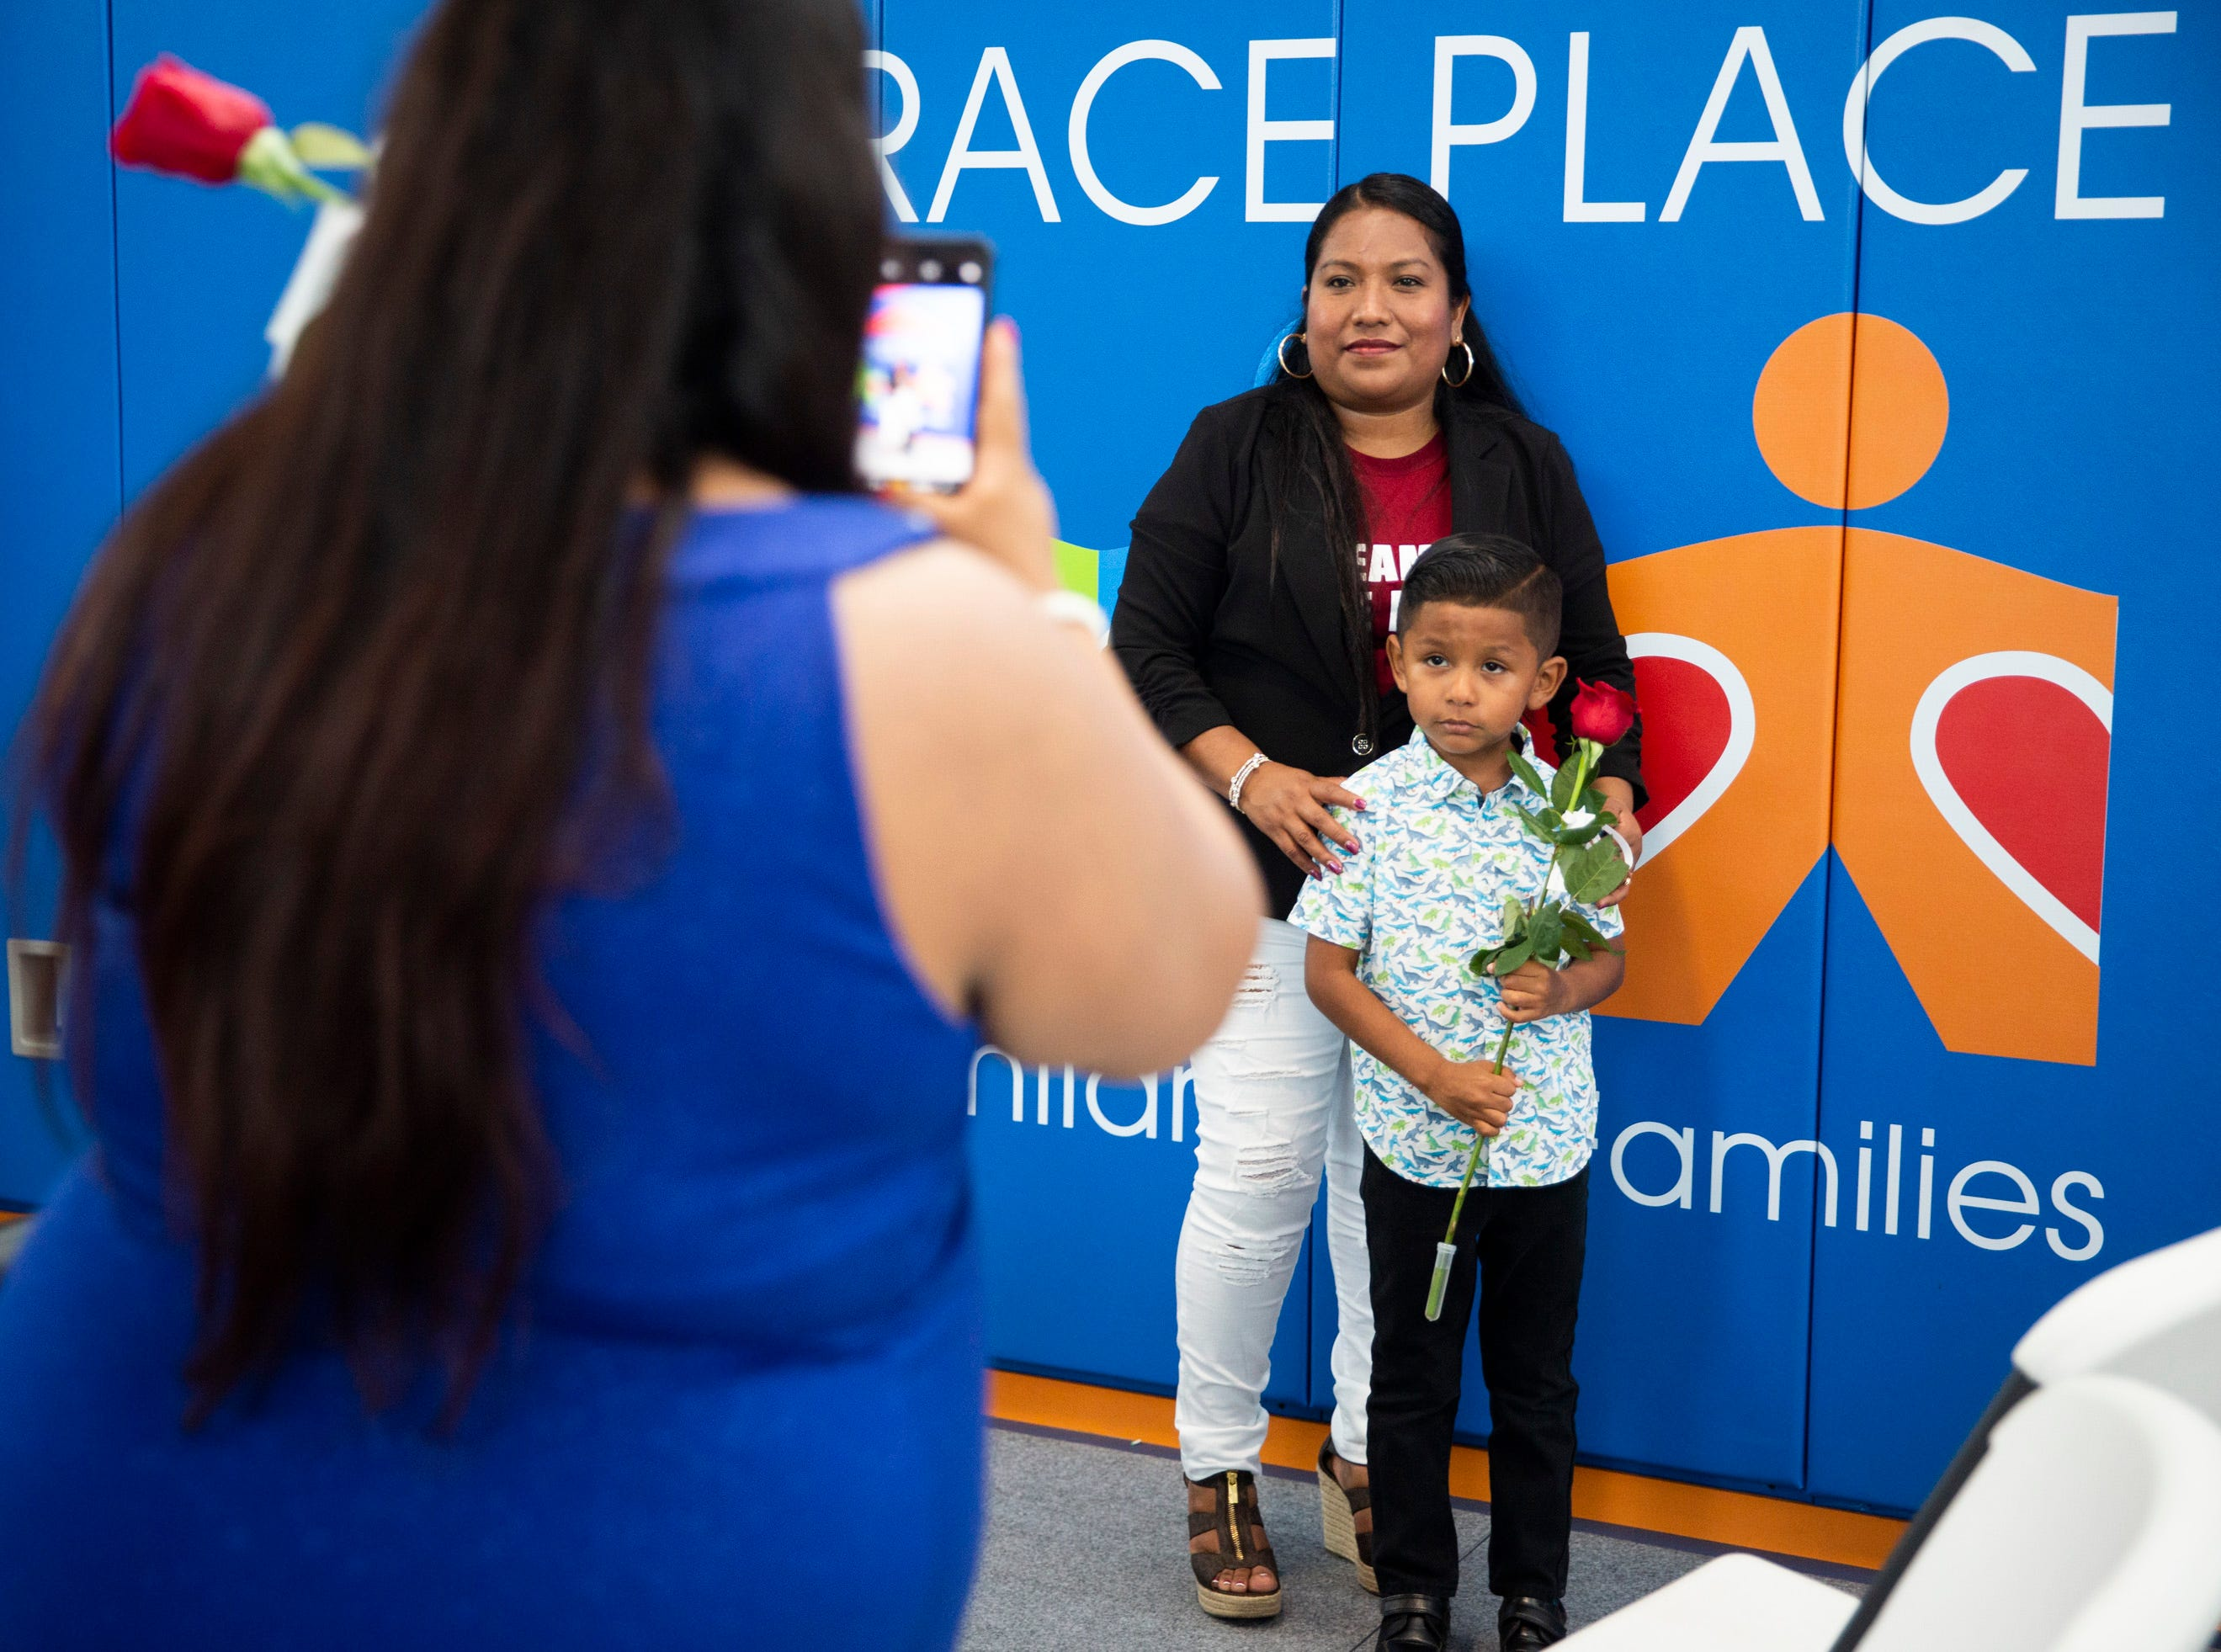 Maria Manuel poses for a photo with her son Gaell Sanchez, 5, during the Bright Beginnings family literacy program graduation at Grace Place in Golden Gate on Wednesday, May 15, 2019.